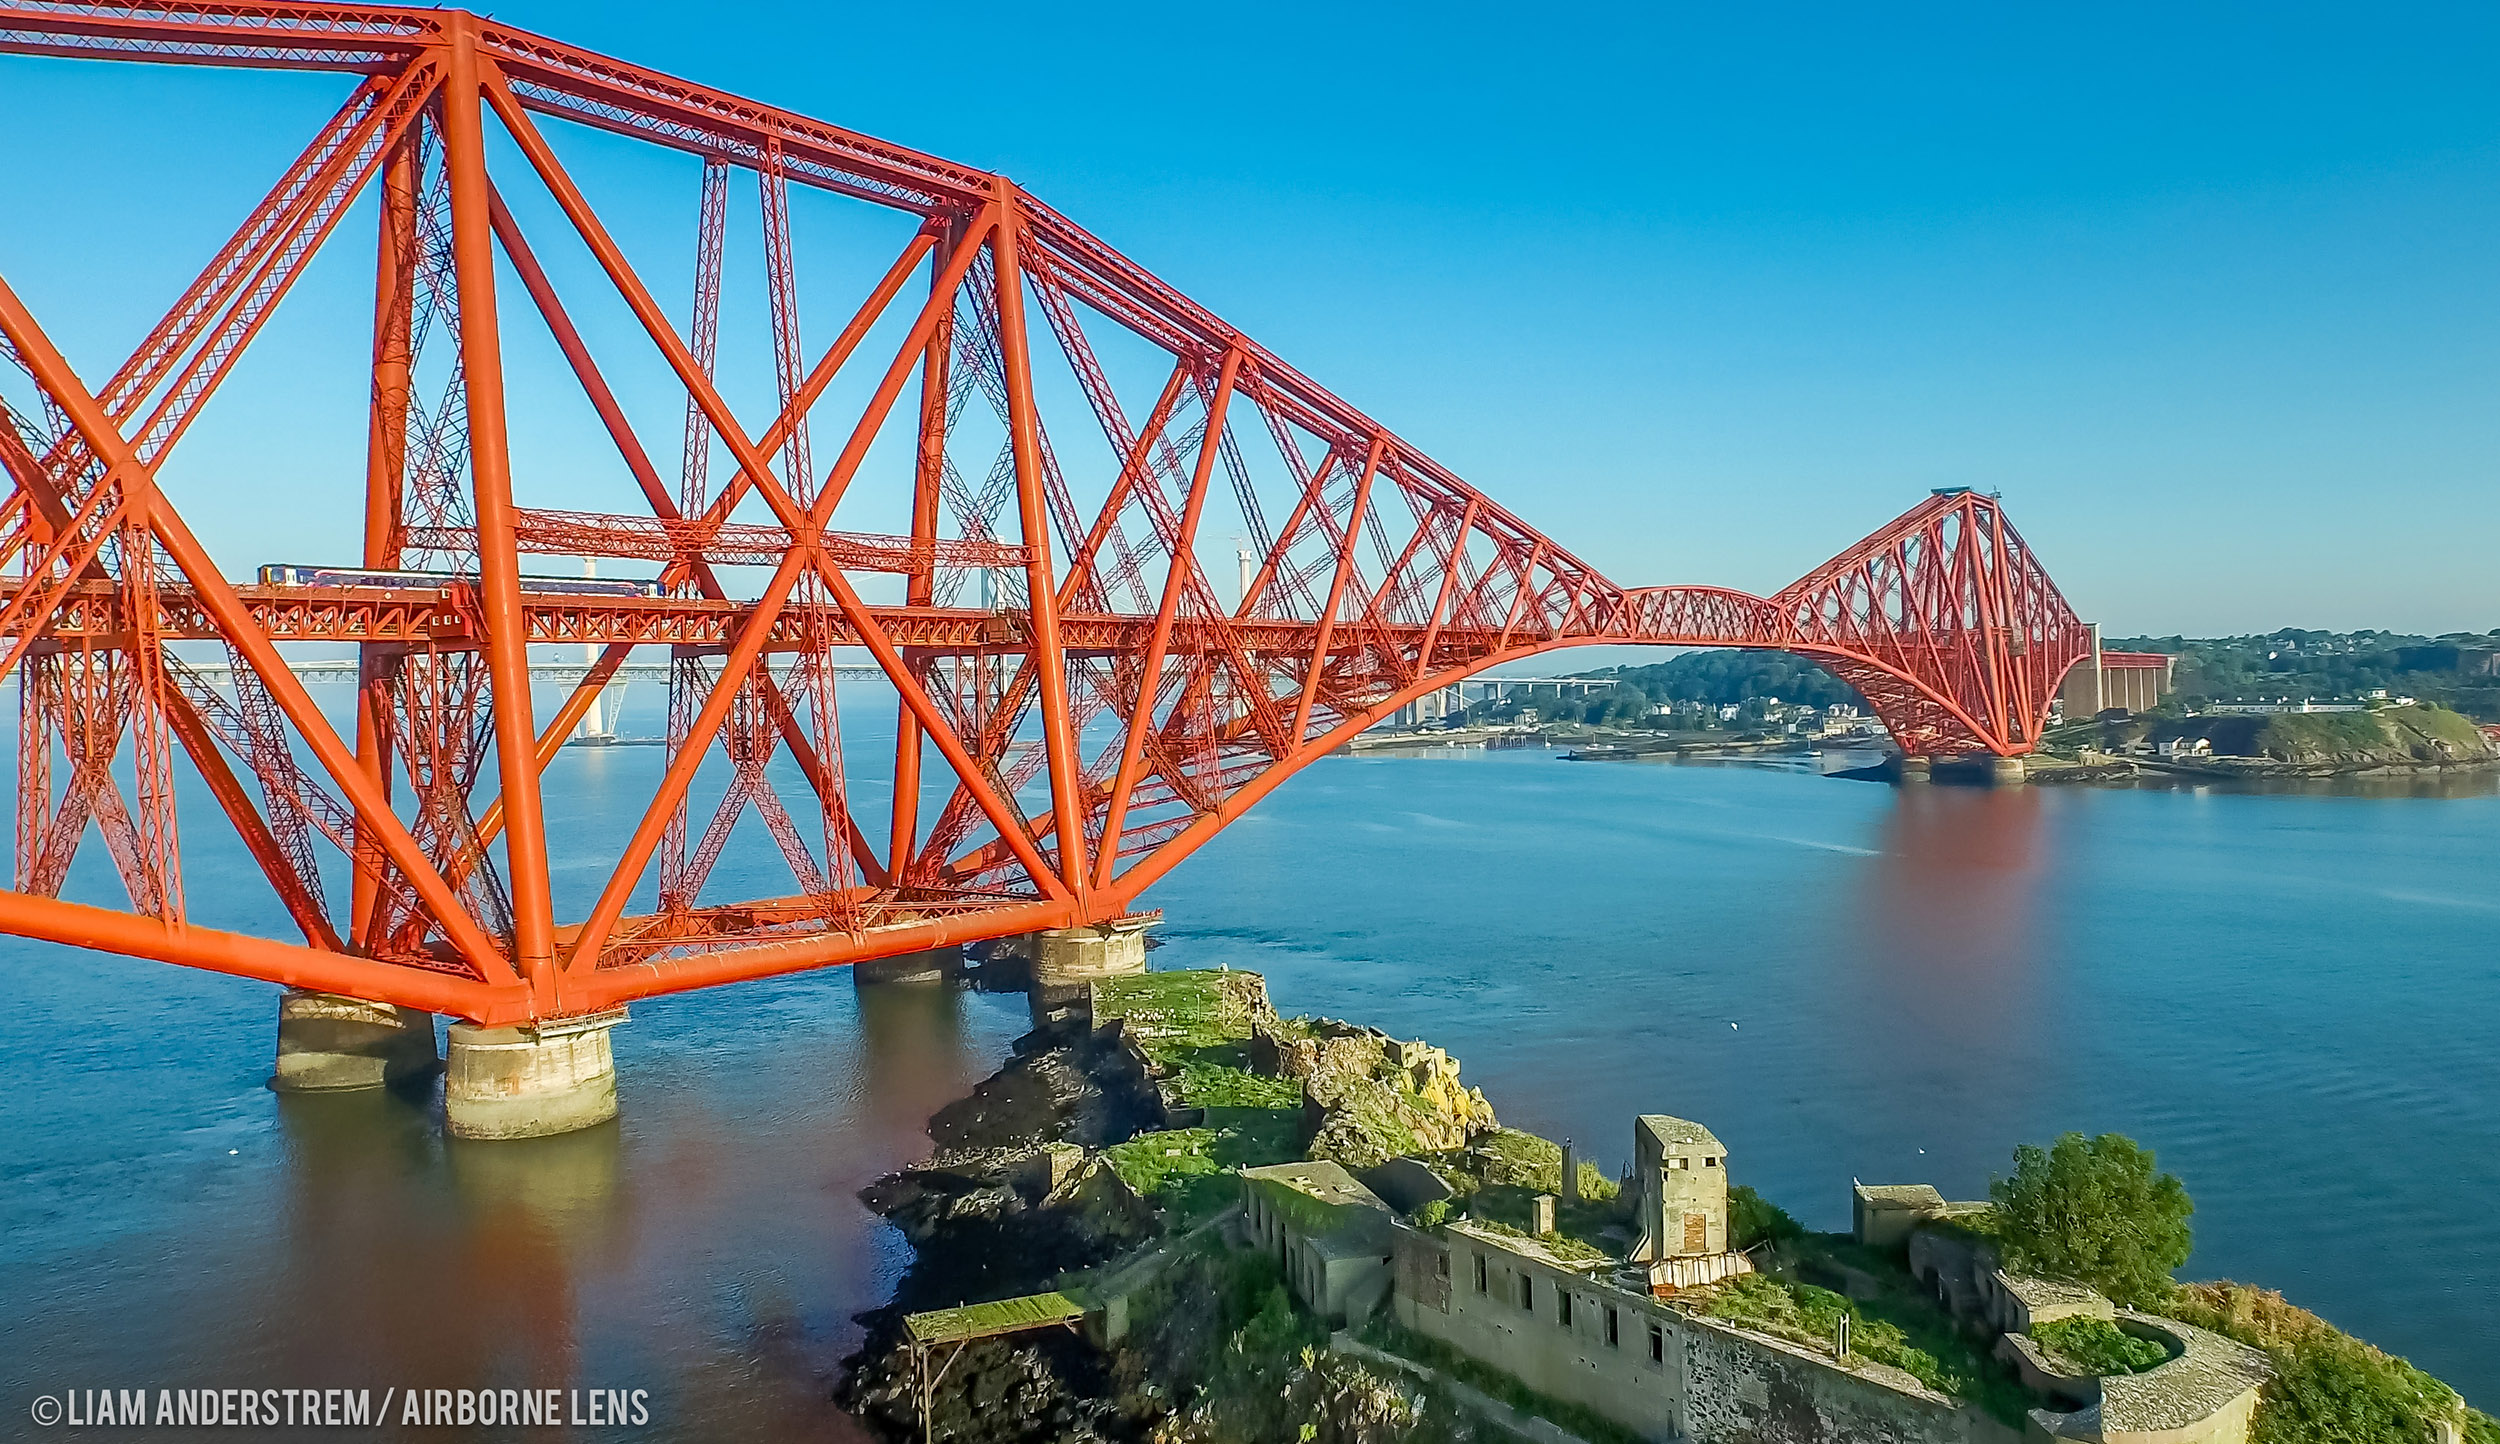 Aerial Photography and Drone Filming Scotland from professional photographer, filmmakers and video production by Airborne Lens